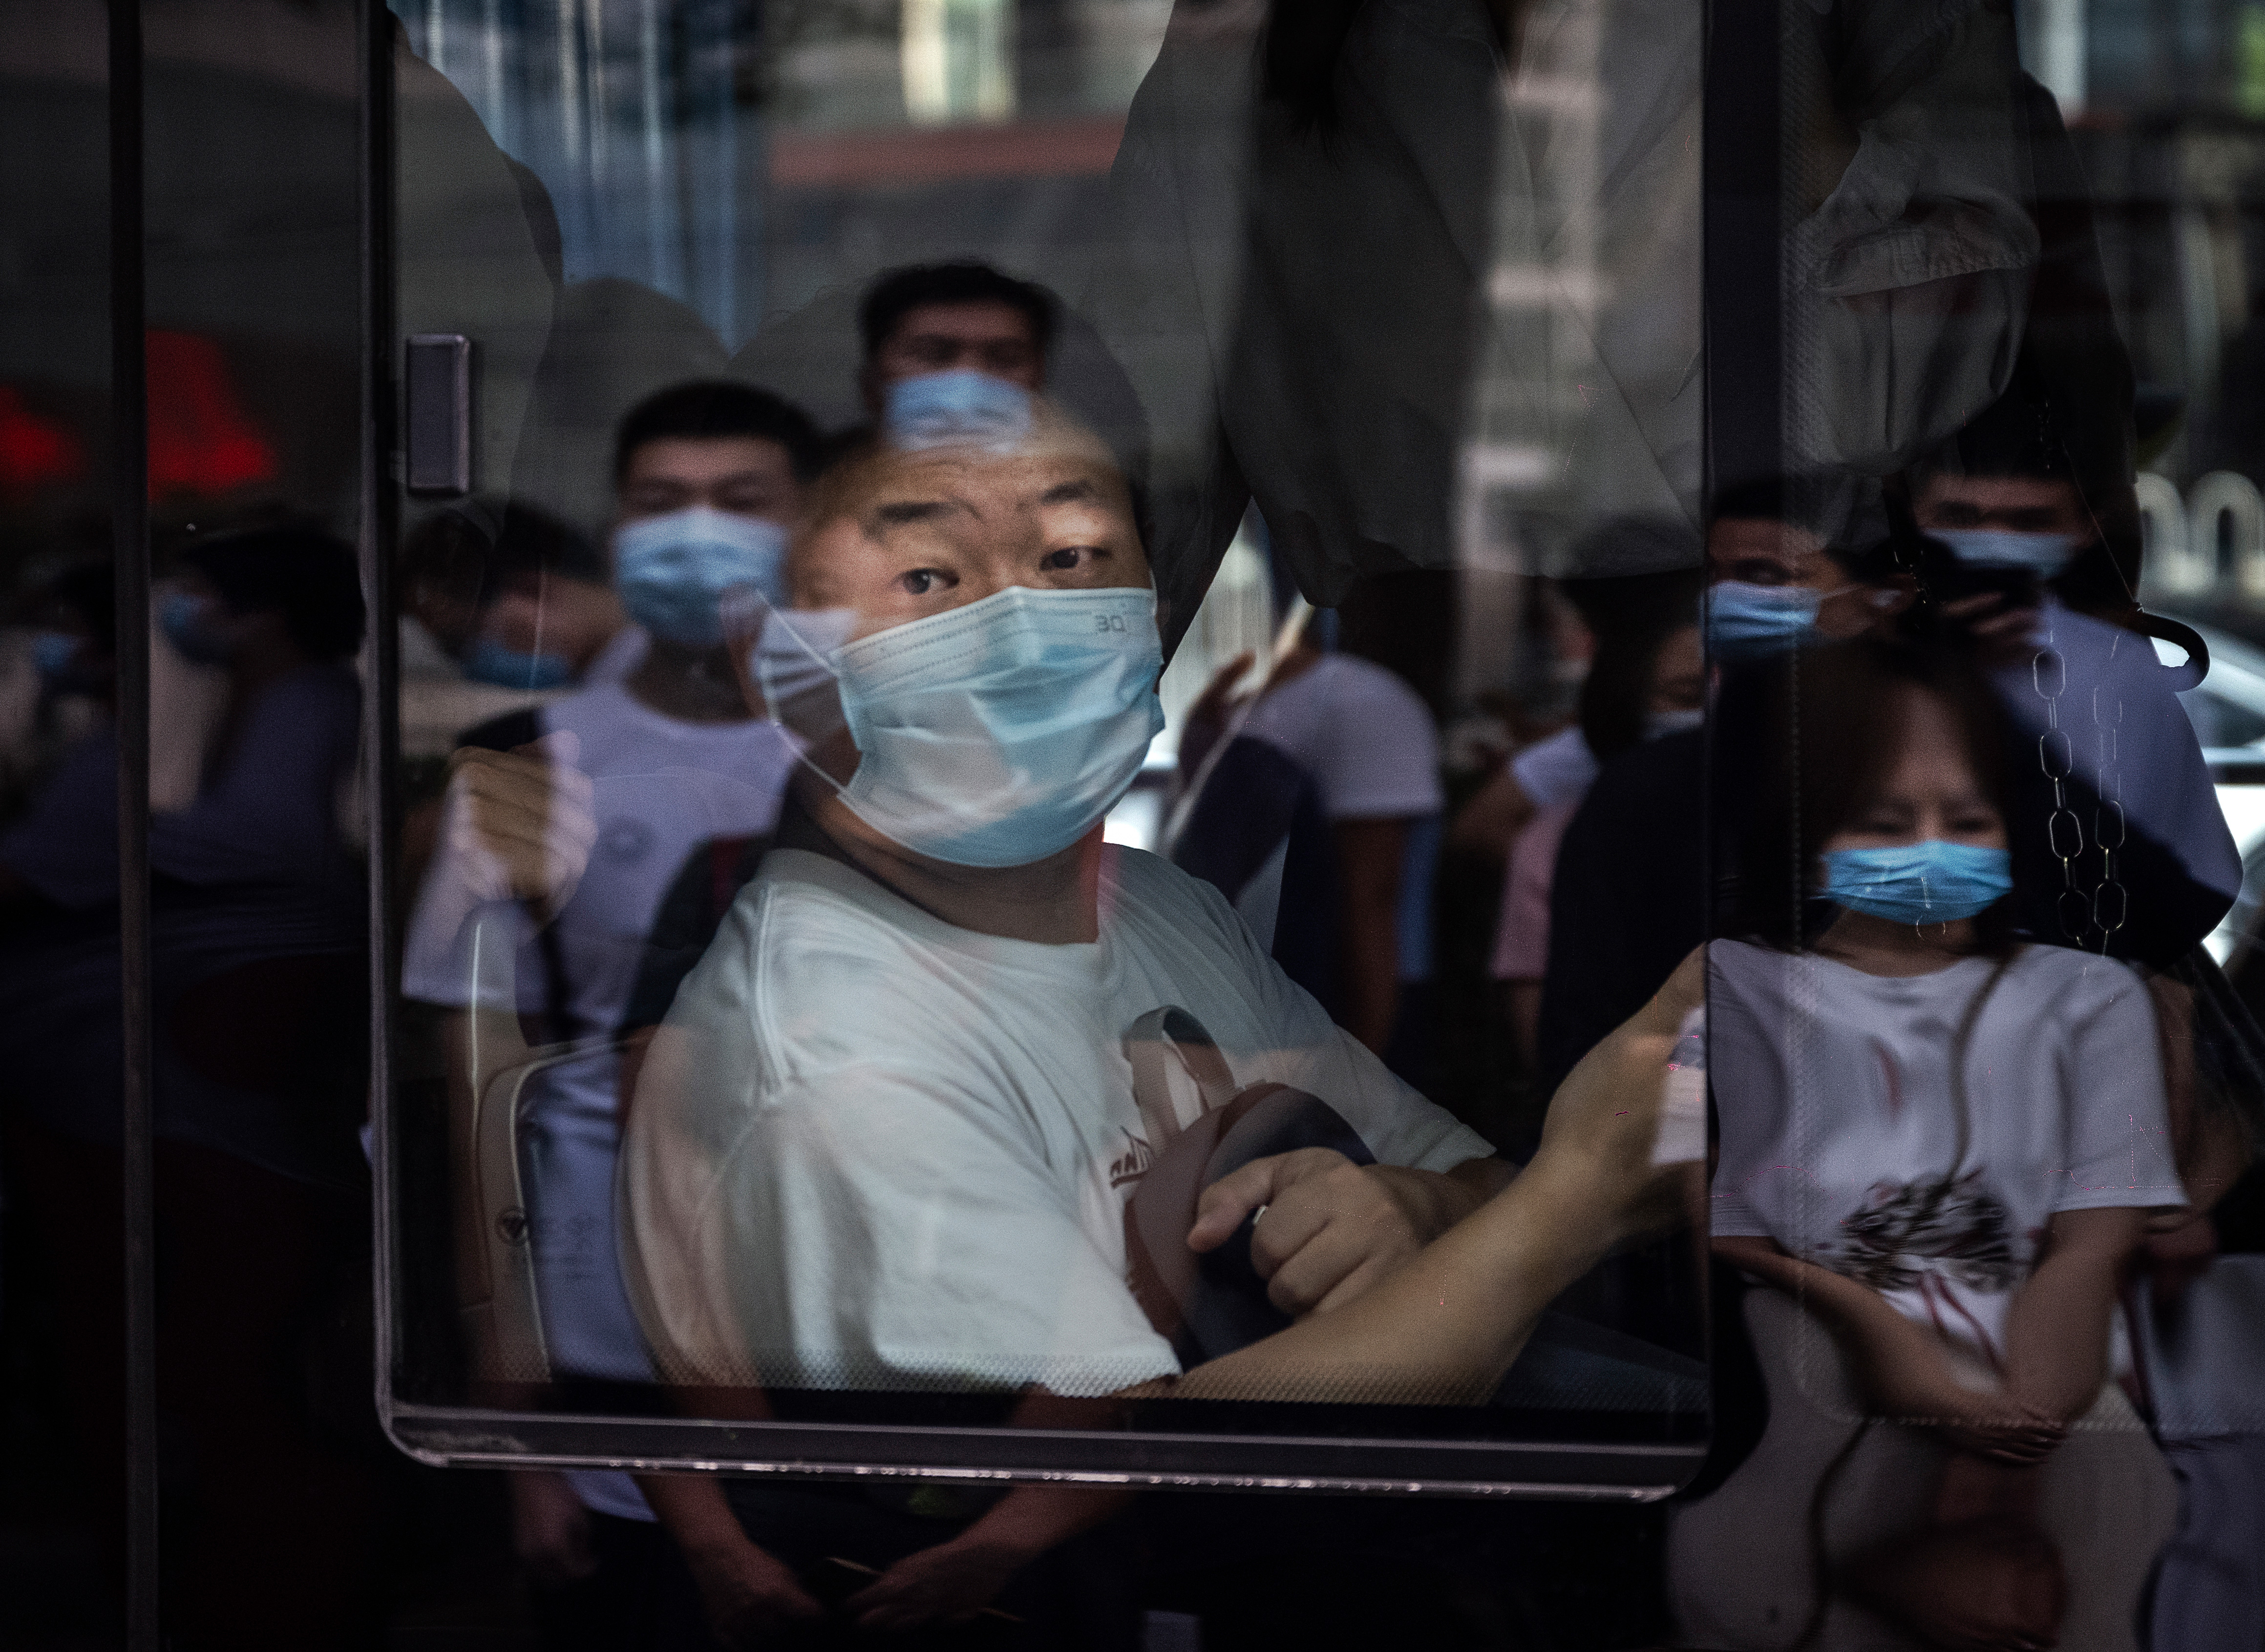 A commuter wears a mask to protect against COVID-19 as he sits on a public bus in Beijing.